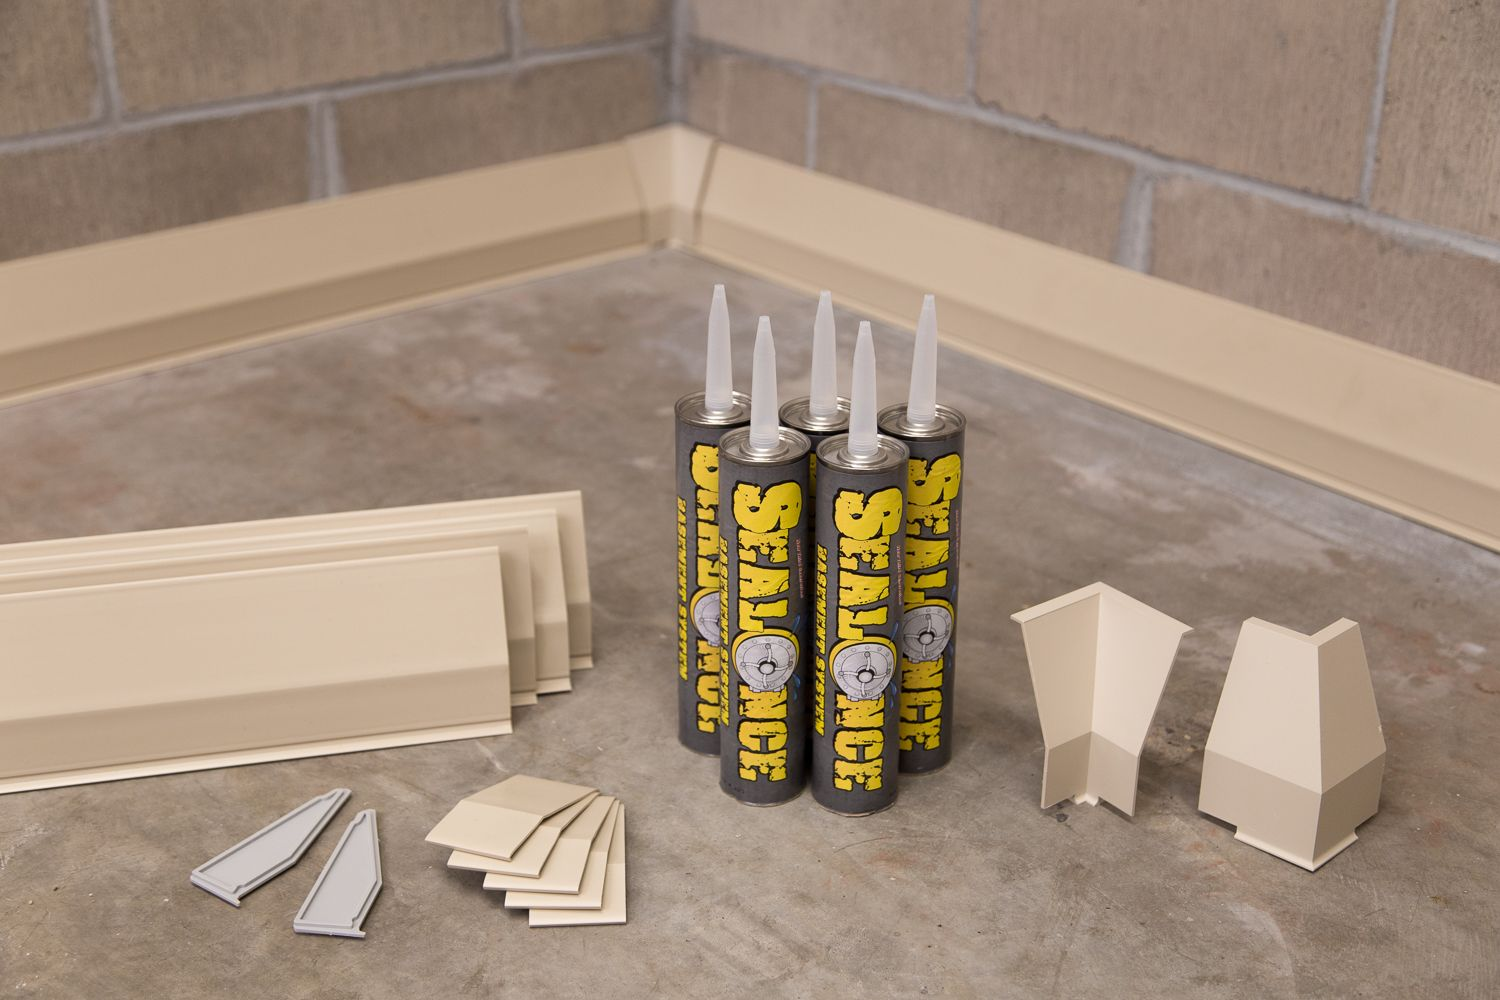 Diy Bat Waterproofing System Bonds Water To Cement Floor Hollow Baseboard Channels Collect Seeping Quietly Drains It Away Easy Install